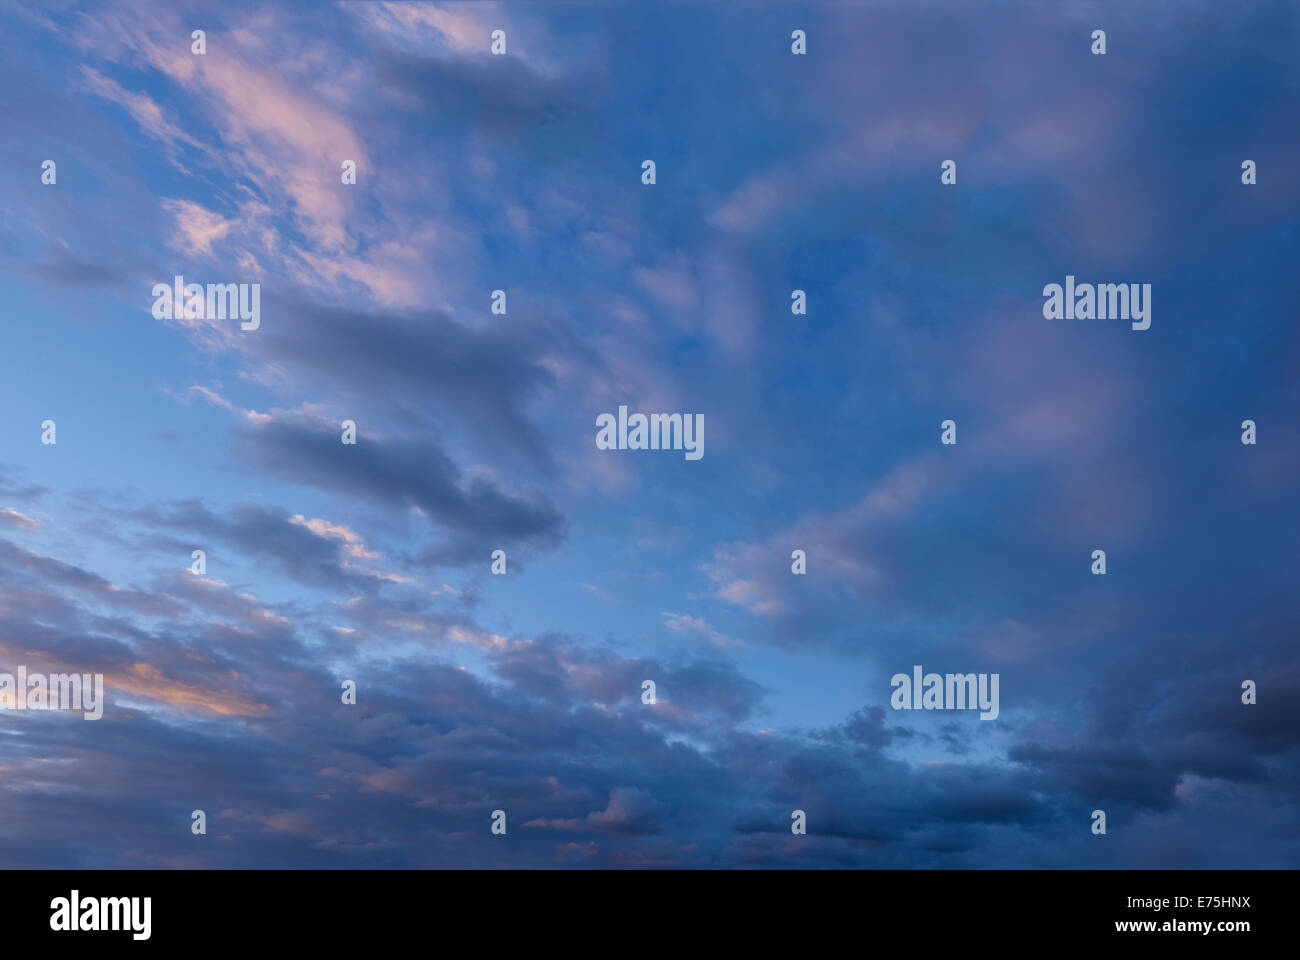 Clouds in a dusk sky Stock Photo